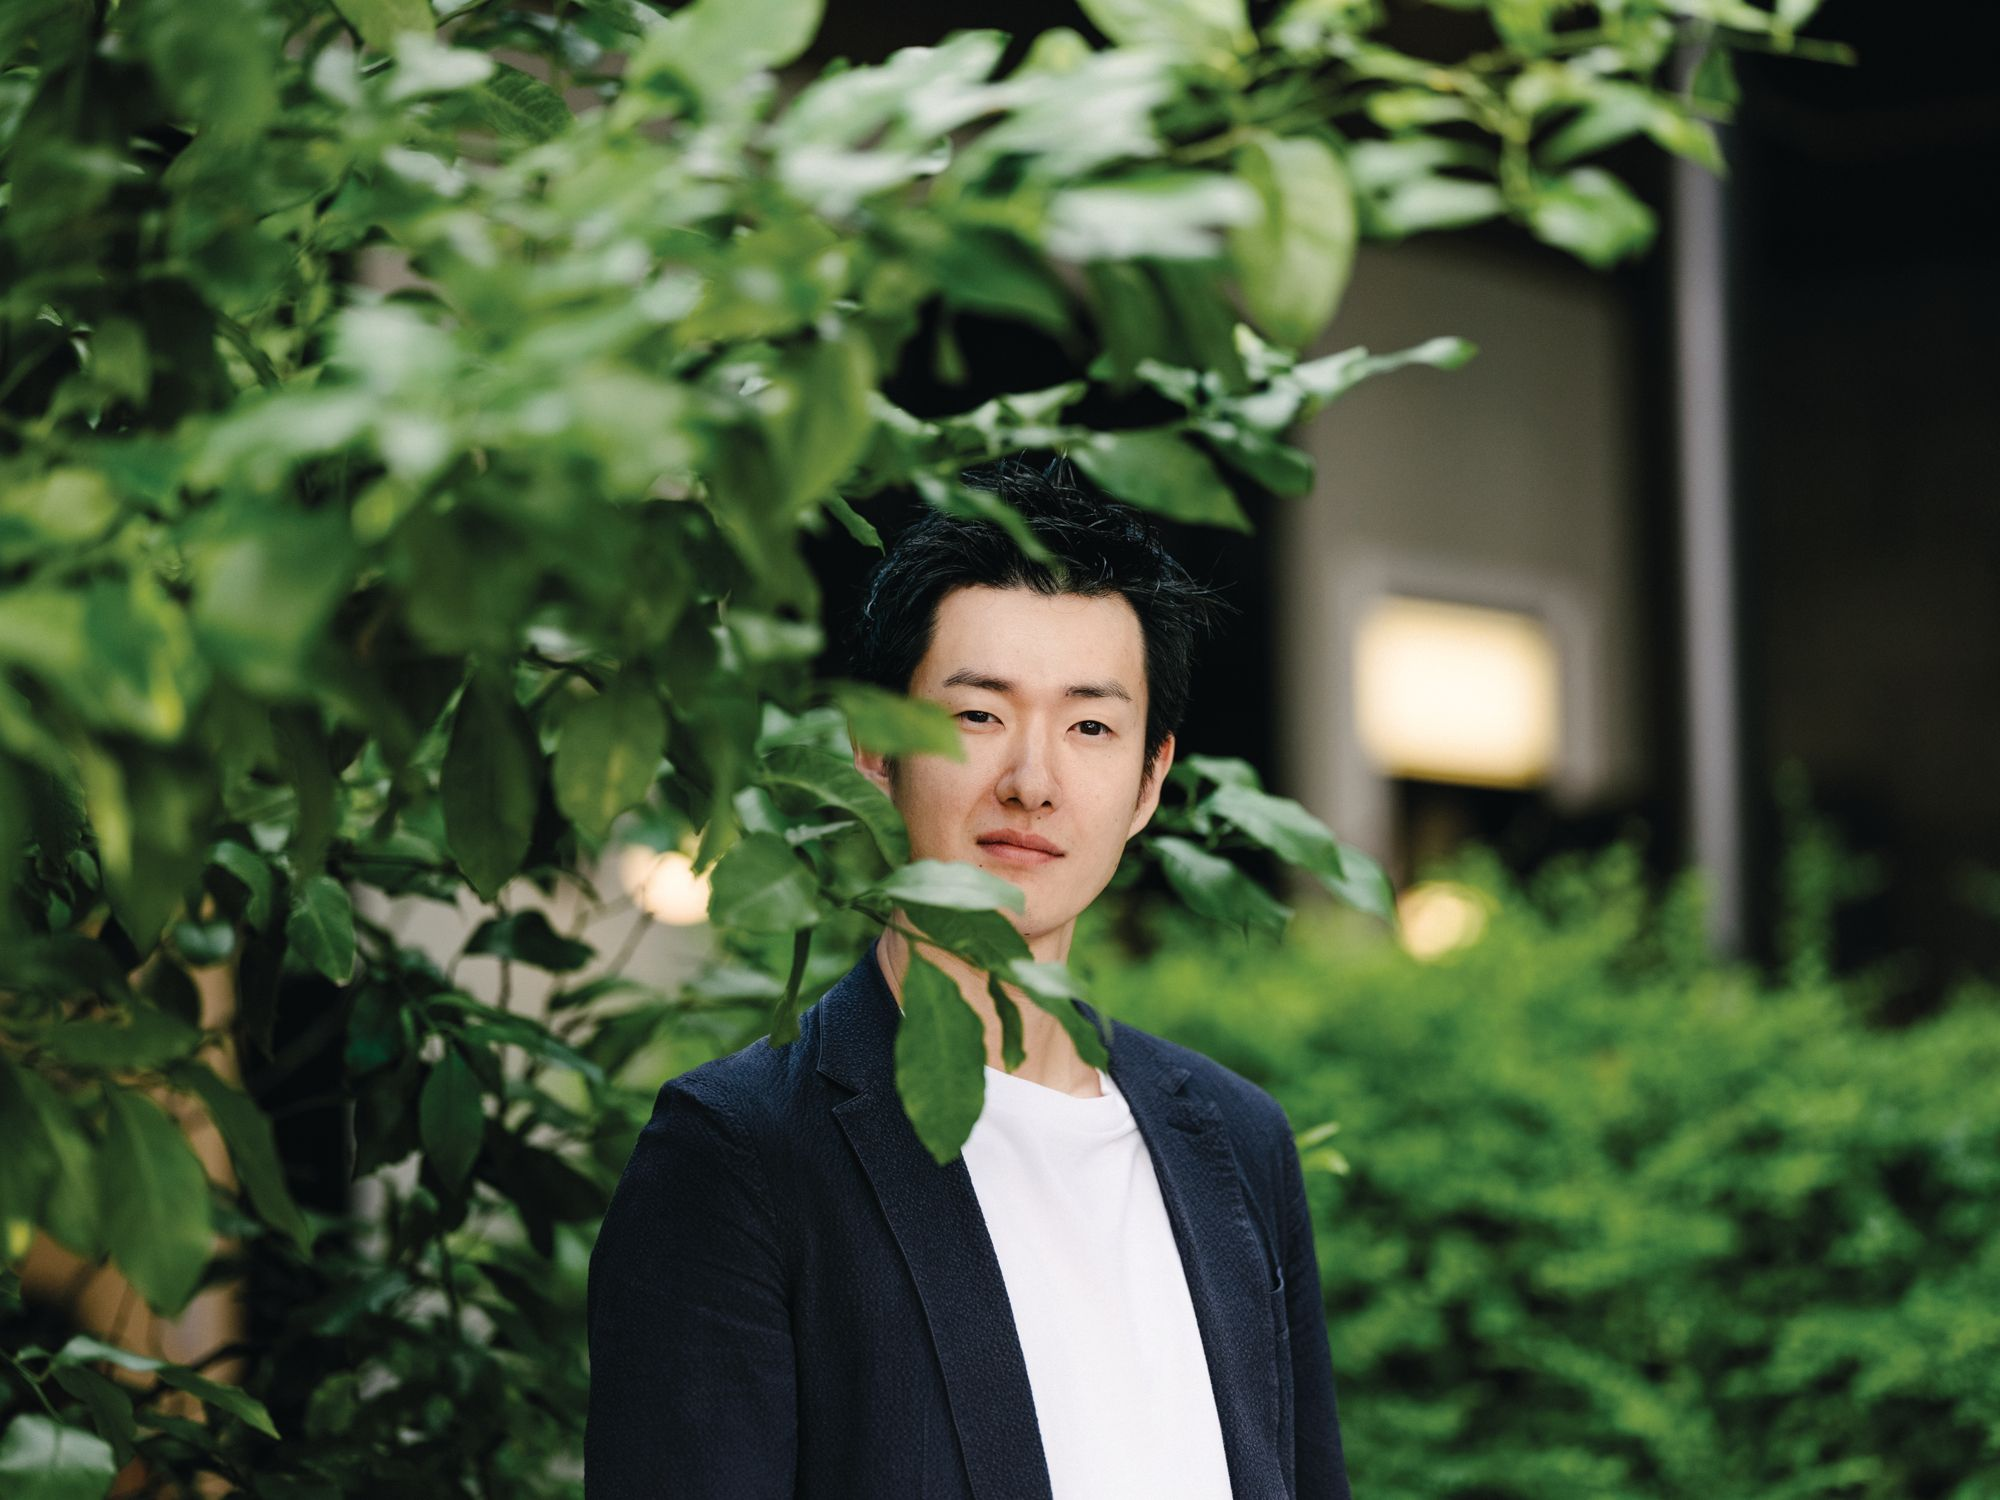 A Tokyo Hotelier Gives Us Tips On How To Best Explore The Japanese Capital